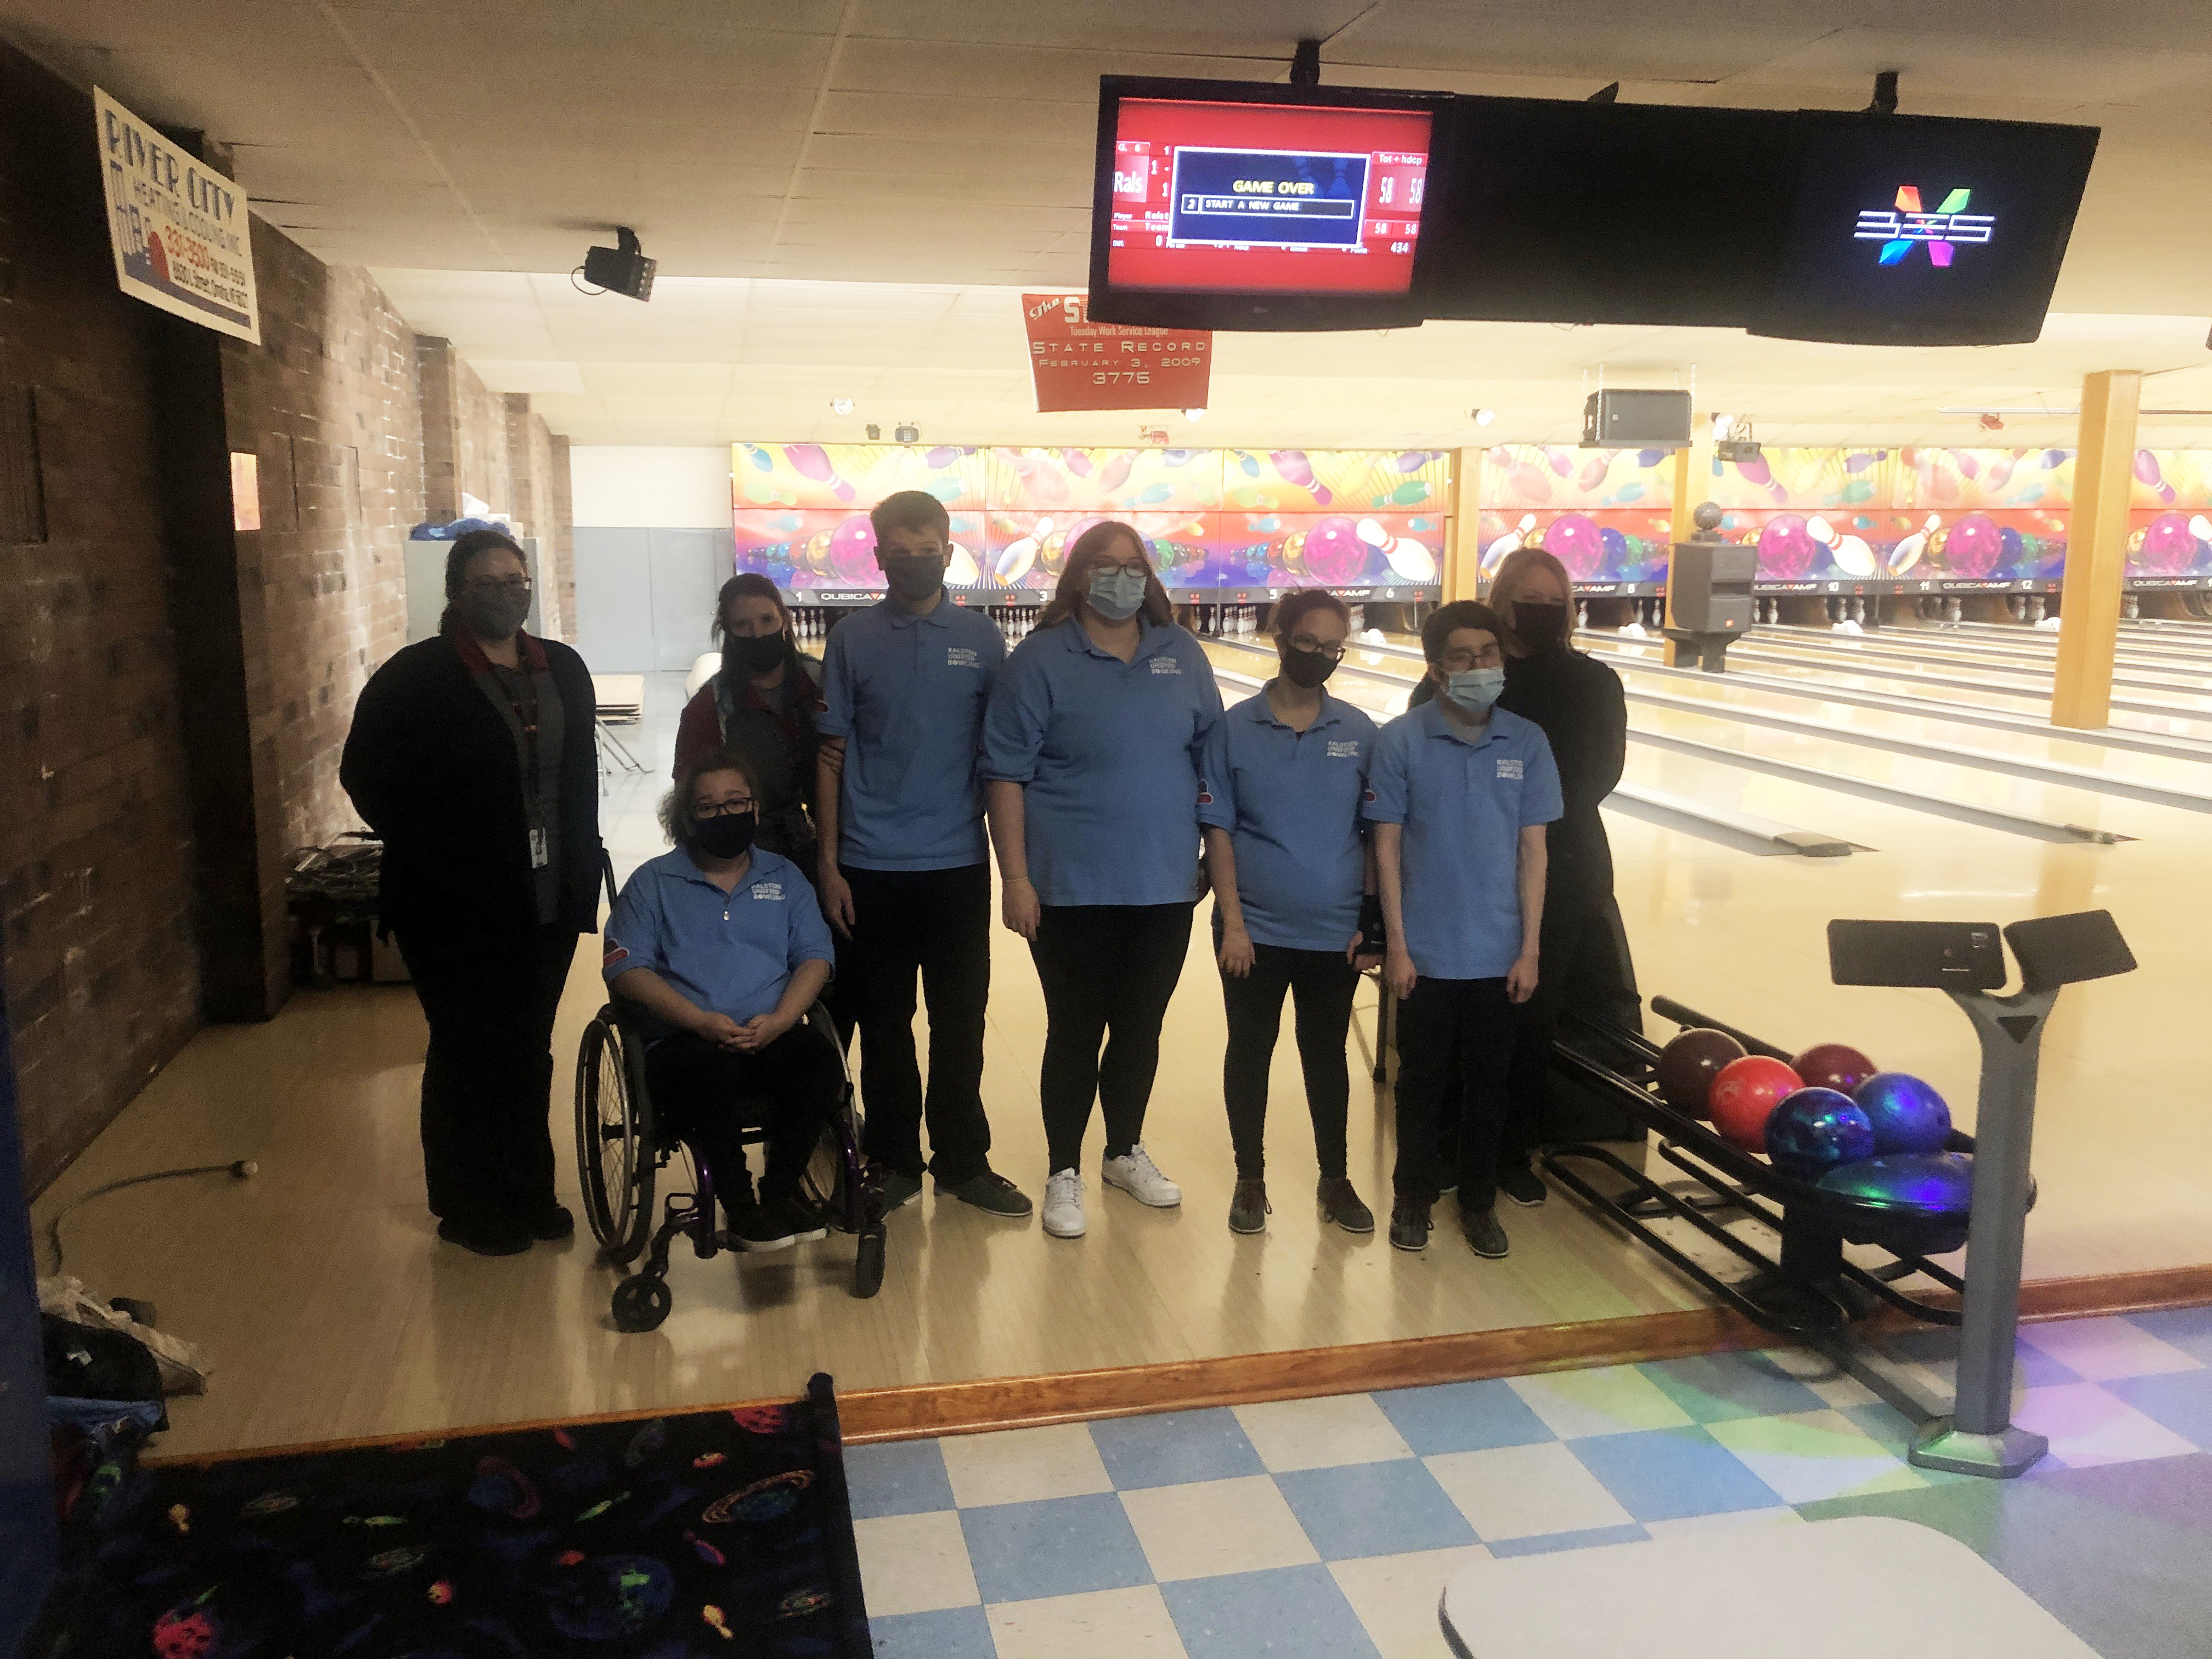 Pictured from left is Unified RPS staff sponsor Hannah Veskrna, Unified RPS staff sponsor Richelle Roth, Kendall Nothhorn, Trevor Petriw, Haileigh Geiszler, Brylee Johnson, Michael Cadena, and Unified RPS staff sponsor Susan Wagner. (Ralston Public Schools)